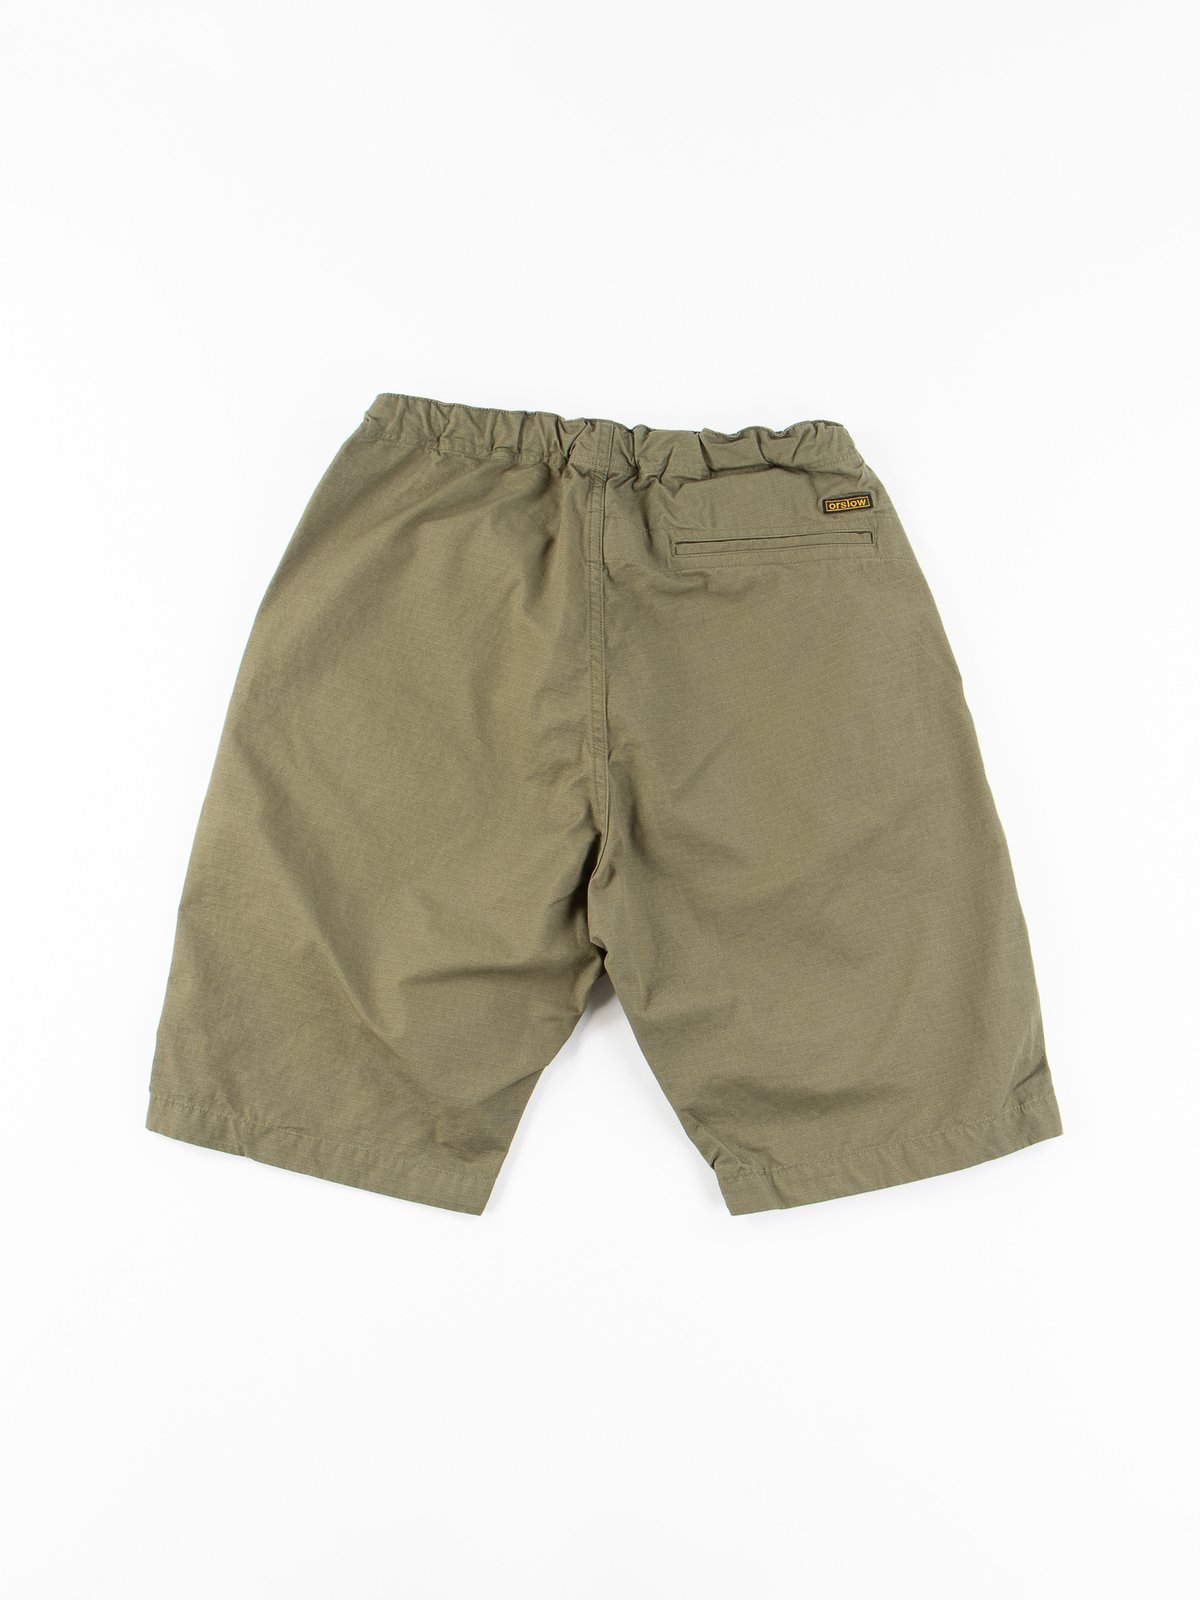 Army Green Ripstop New Yorker Short - Image 6